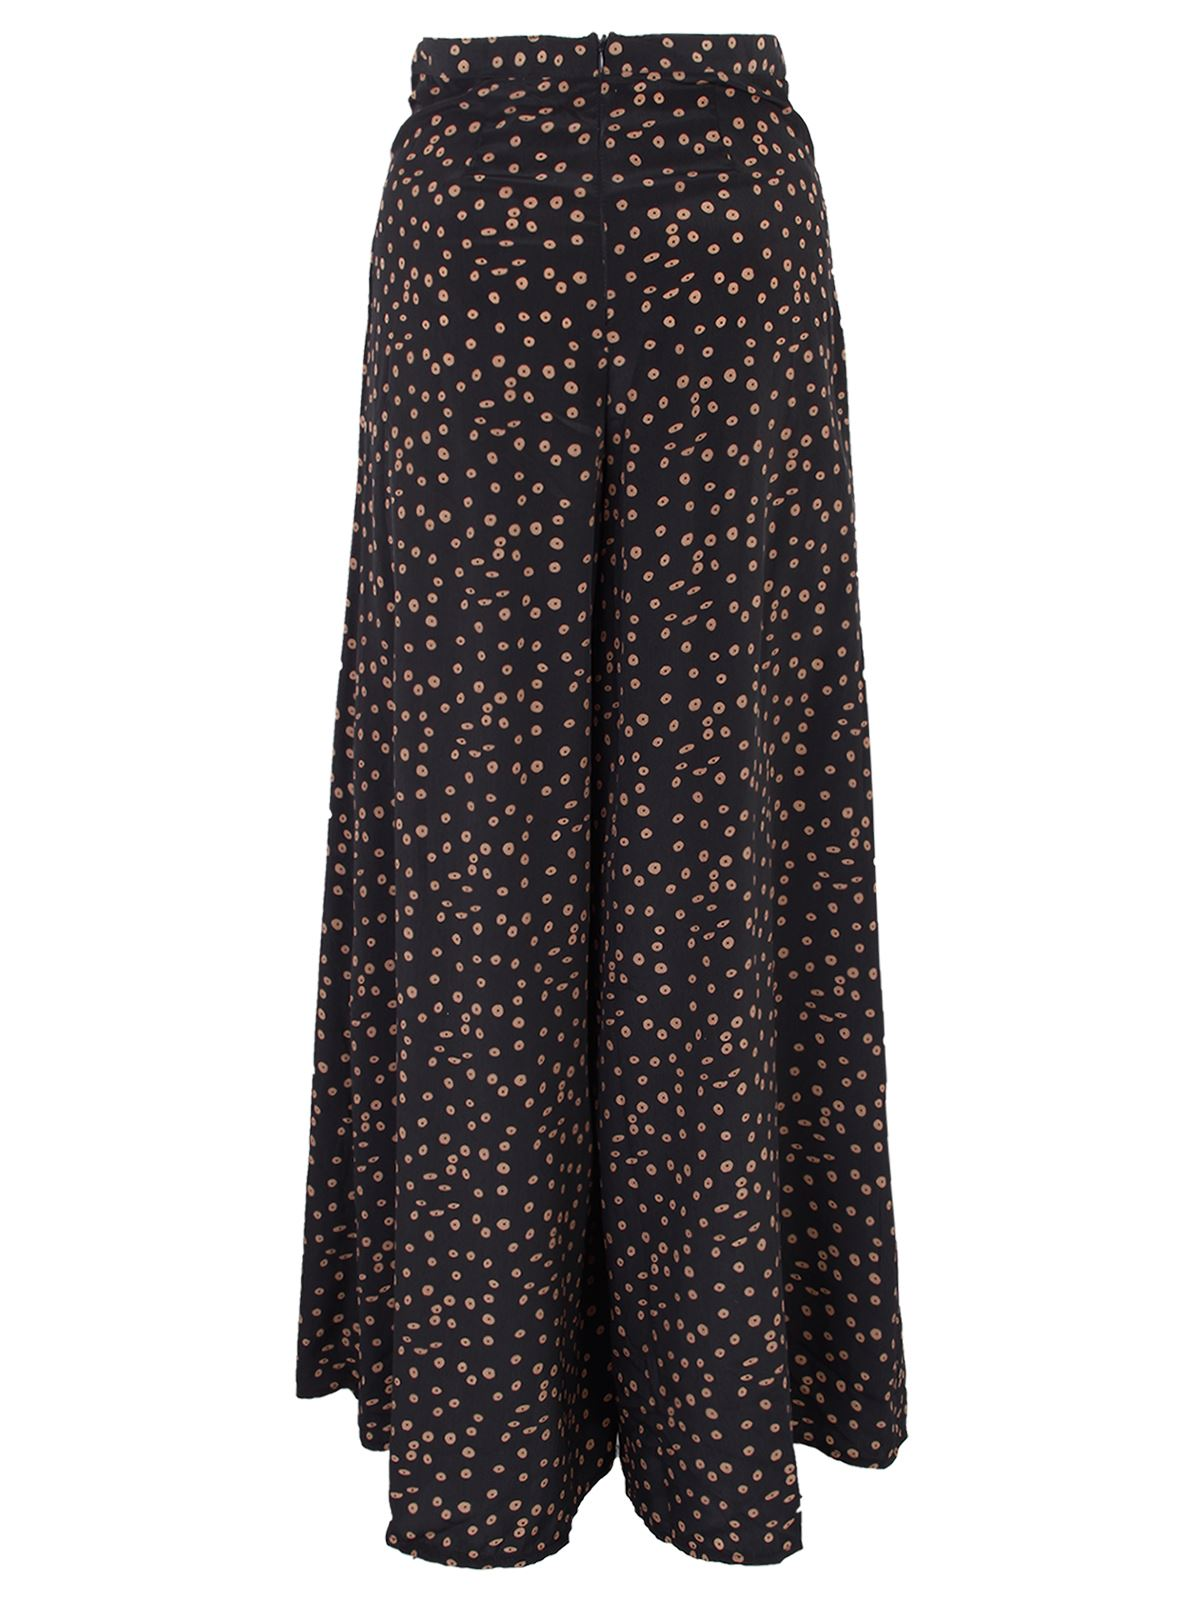 Shop for womens palazzo pants online at Target. Free shipping on purchases over $35 and save 5% every day with your Target REDcard.